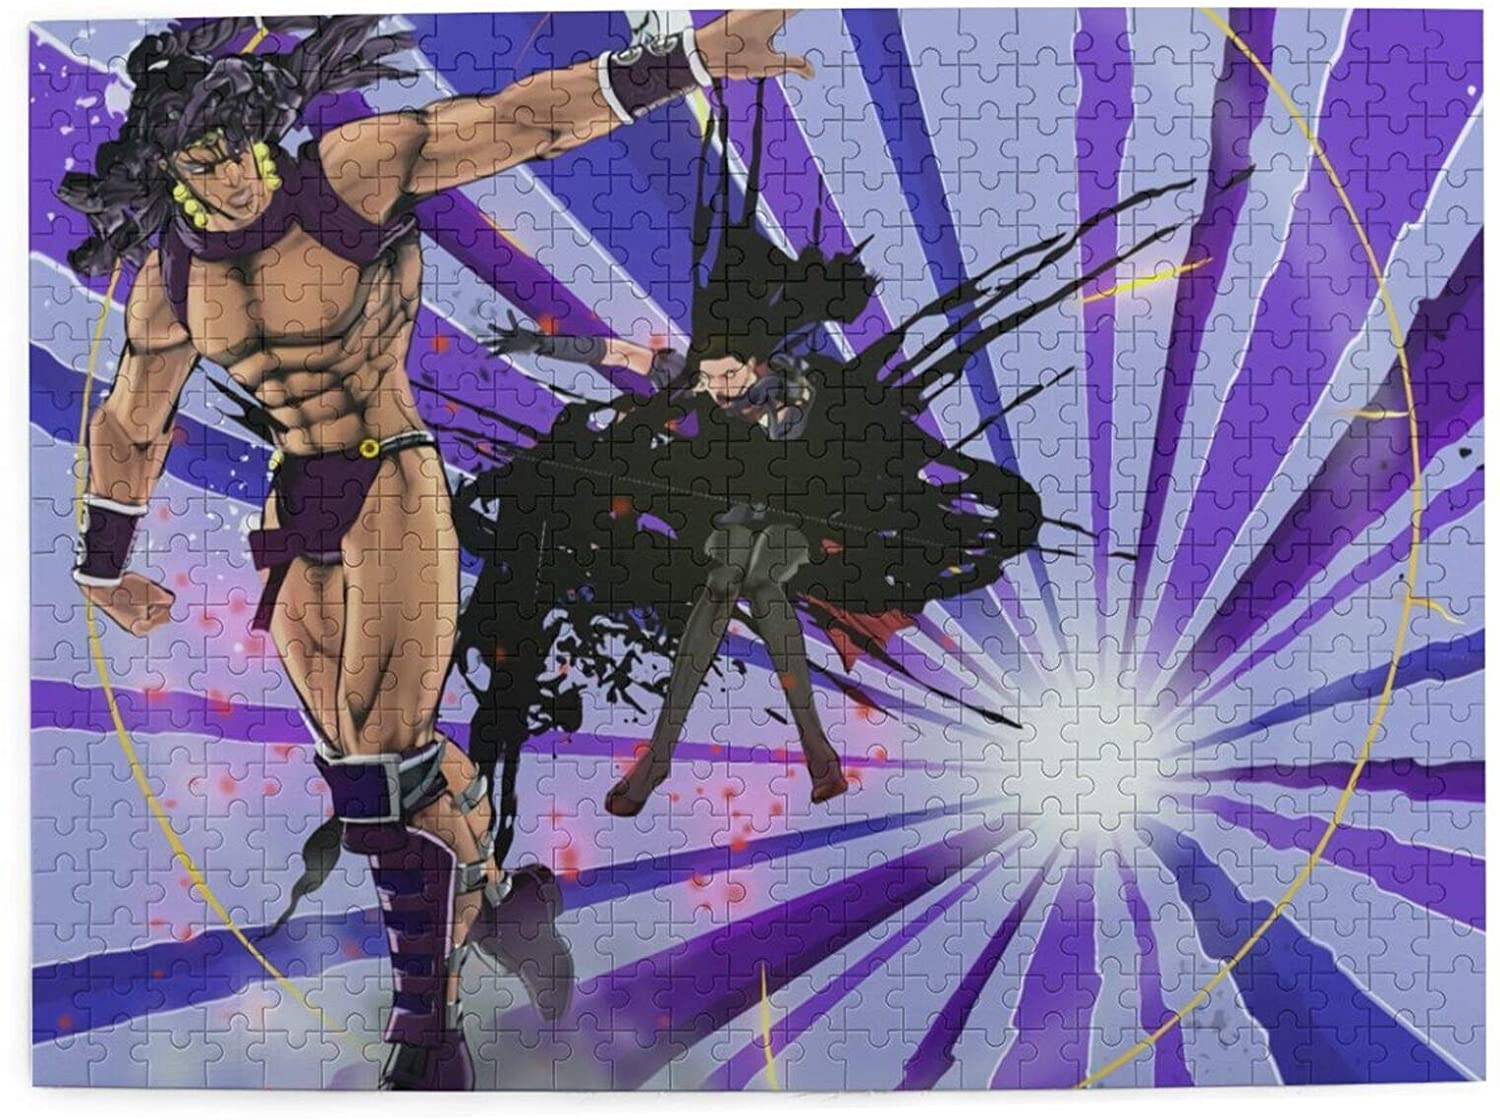 Vsldfjc Anime JoJo's Bizarre Adventure Buffalo Games - 500 Piece Large Jigsaw Puzzle, Challenging Puzzle Game, Wooden Puzzles for Adults and Teens 20.4 x 15 Inches